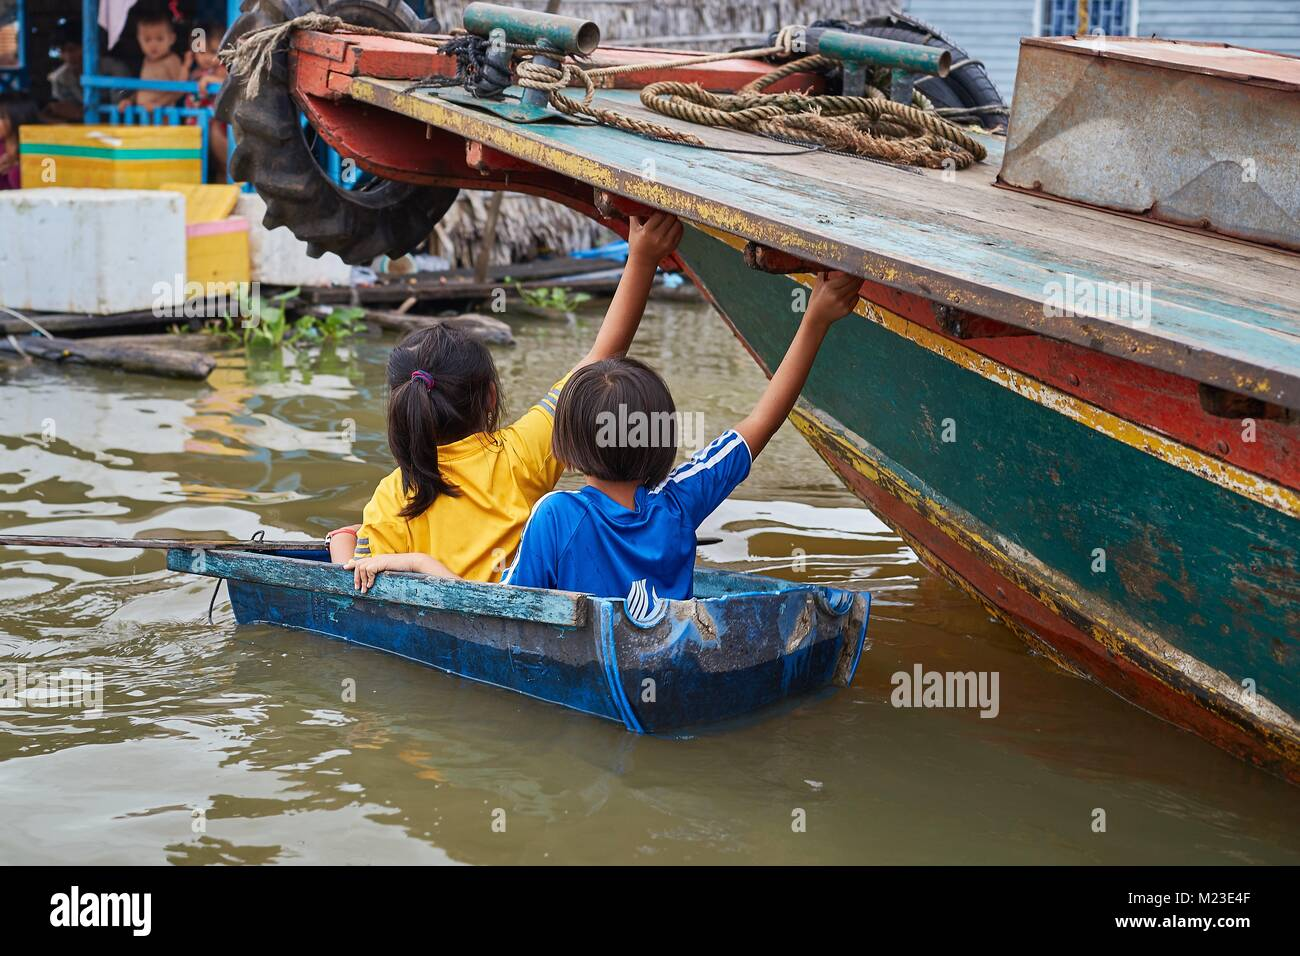 Children rowing on jerrican, Kompong Chhnang, Cambodia - Stock Image